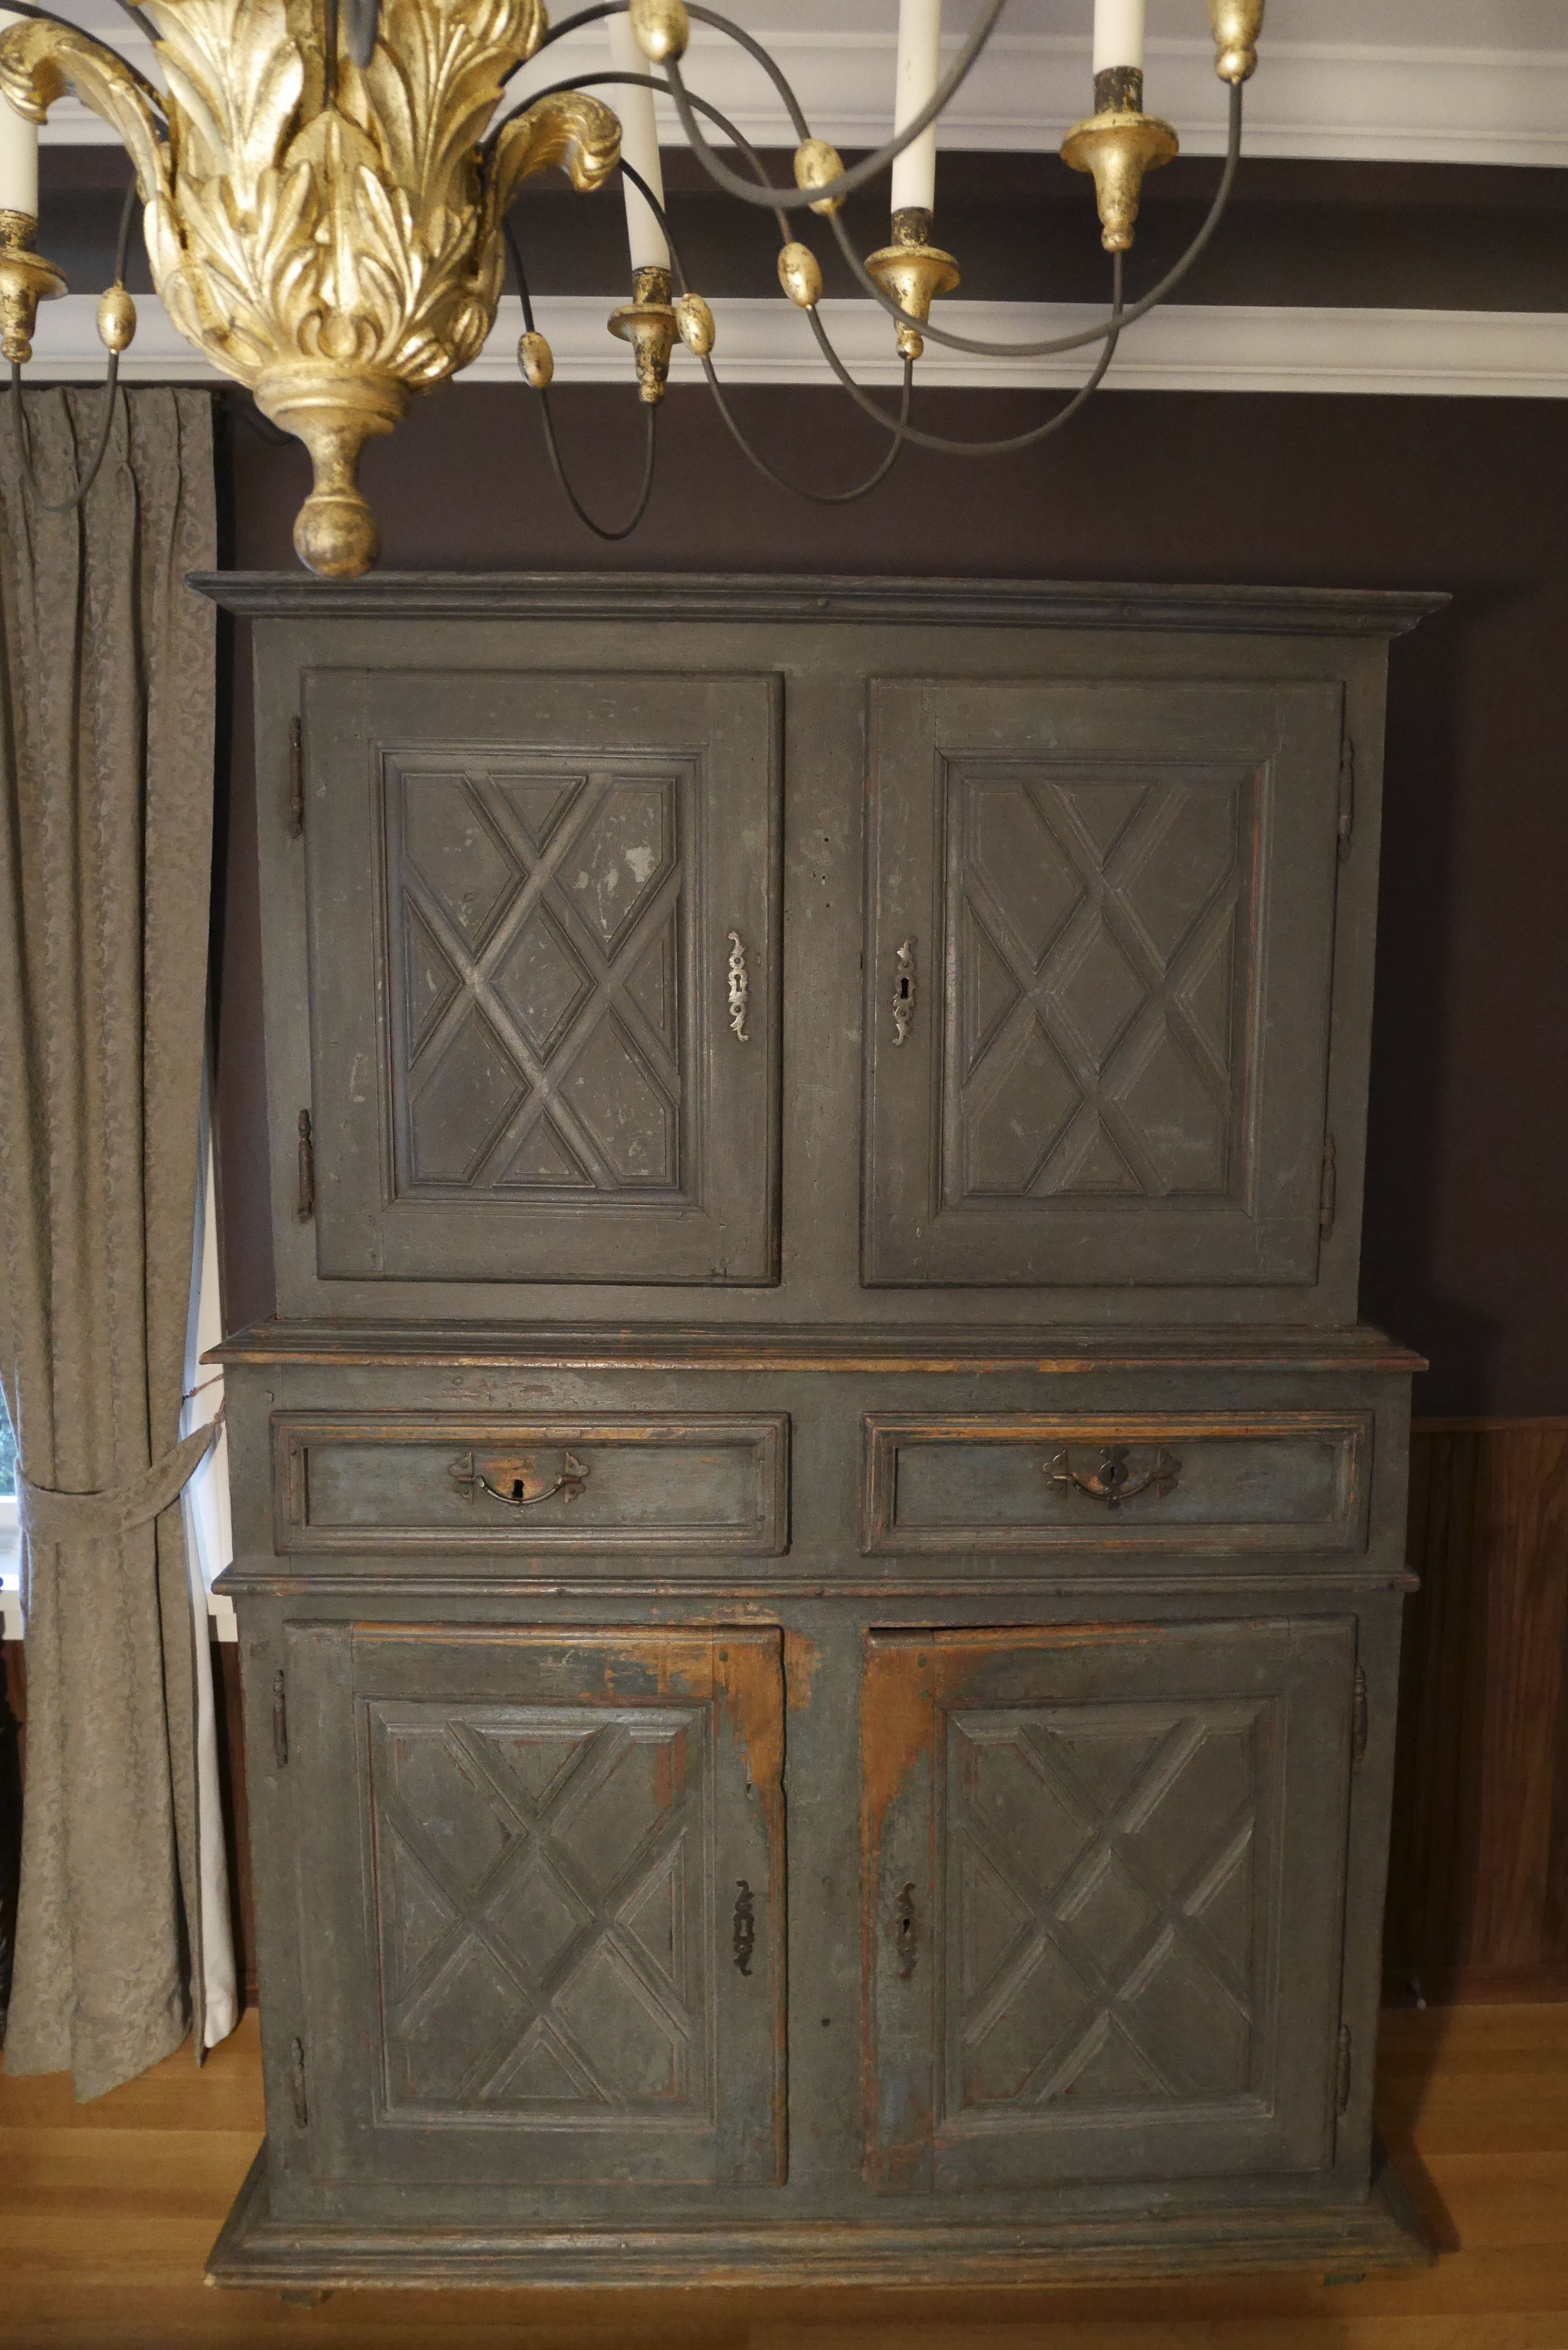 Reproduction Meubles Anciens Québec Quebec Buffet Deux Corps 1720 French Canadiana Furniture Pine